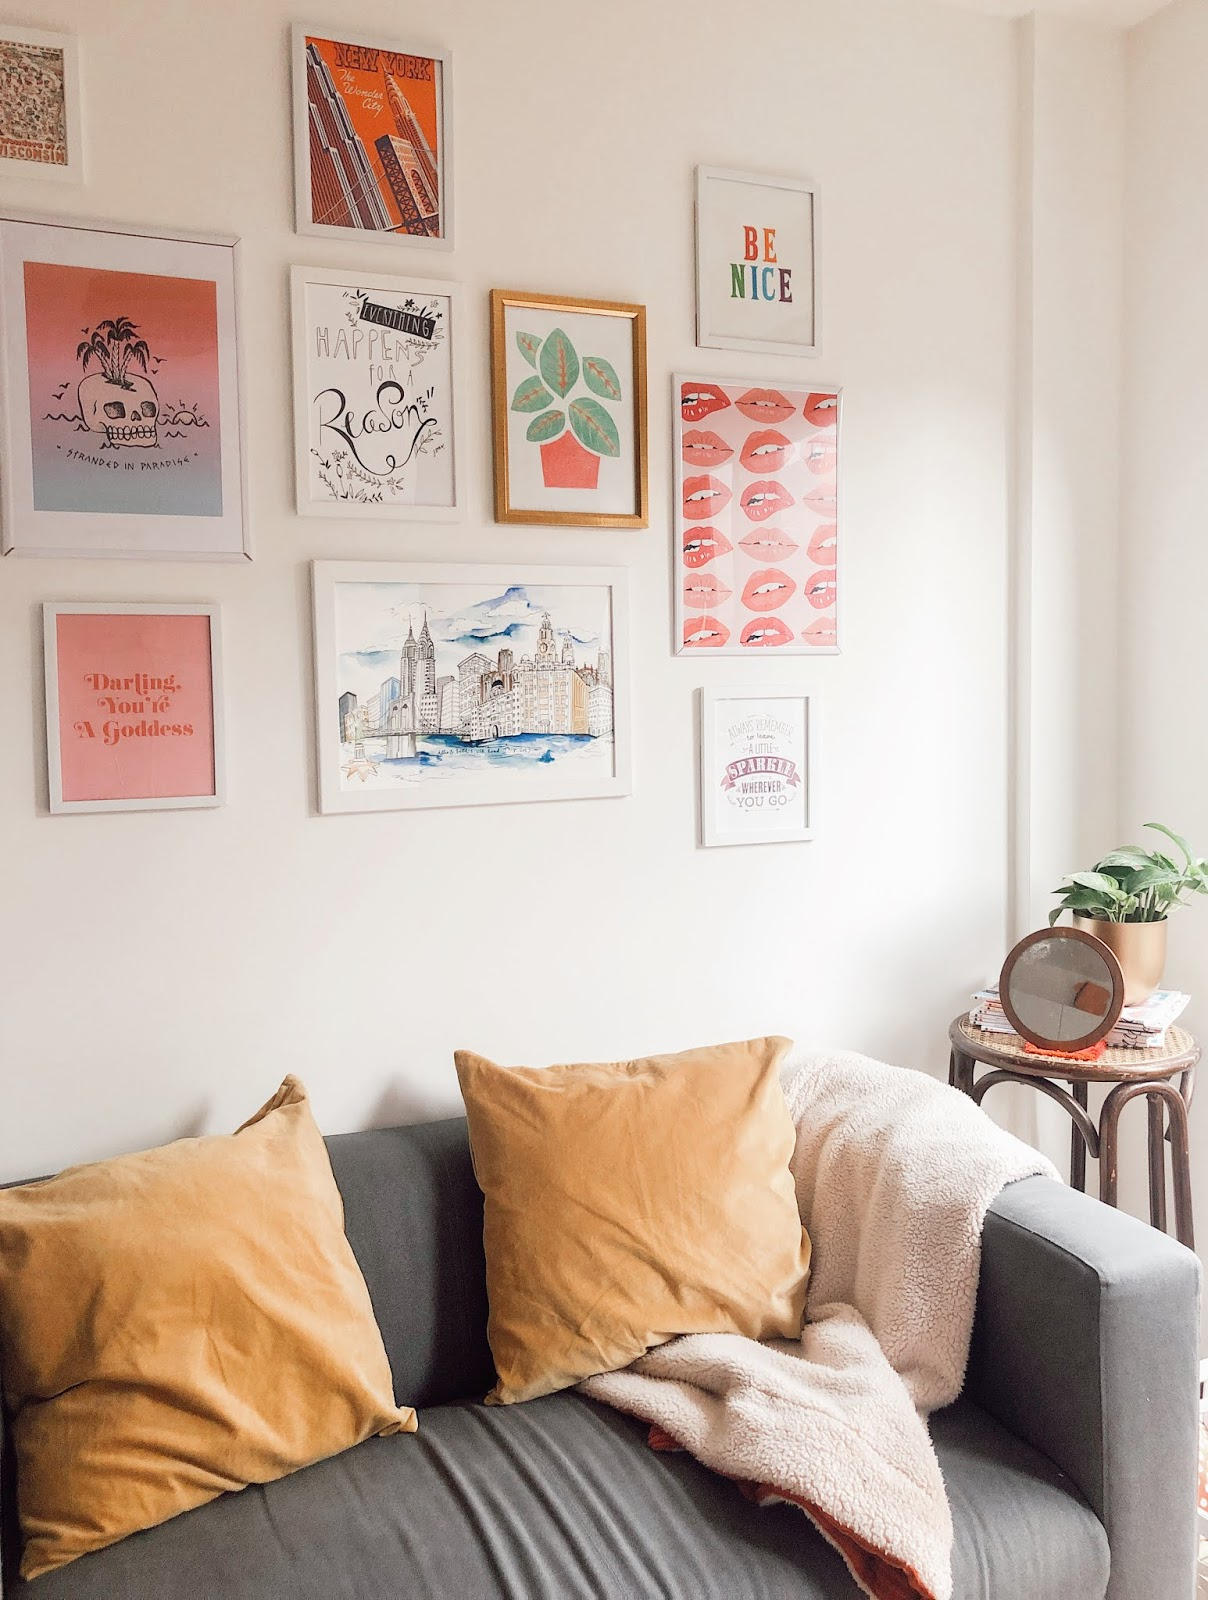 gallery wall featuring mismatched colourful prints above grey couch with mustard velvet cushions and rattan side table with houseplant